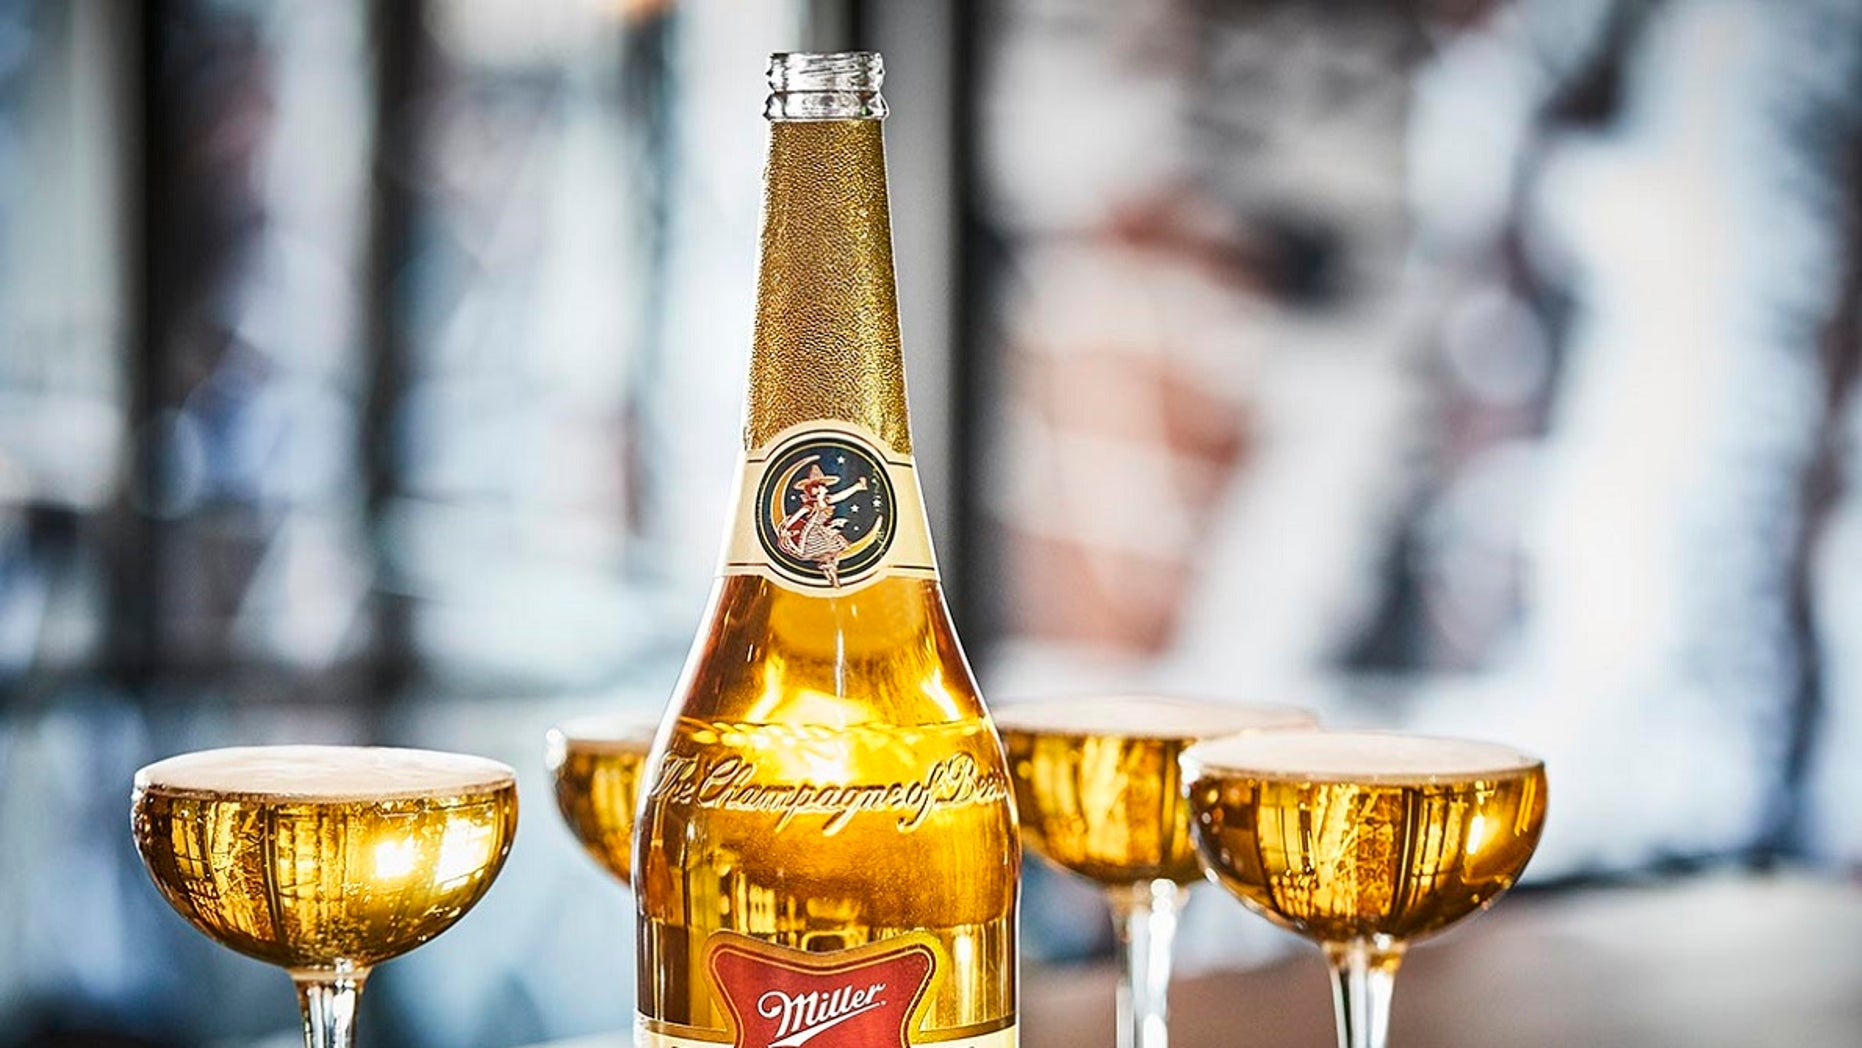 MillerCoors debuted a limited-edition High Life bottle, with a suggested retail price of just $3,49.